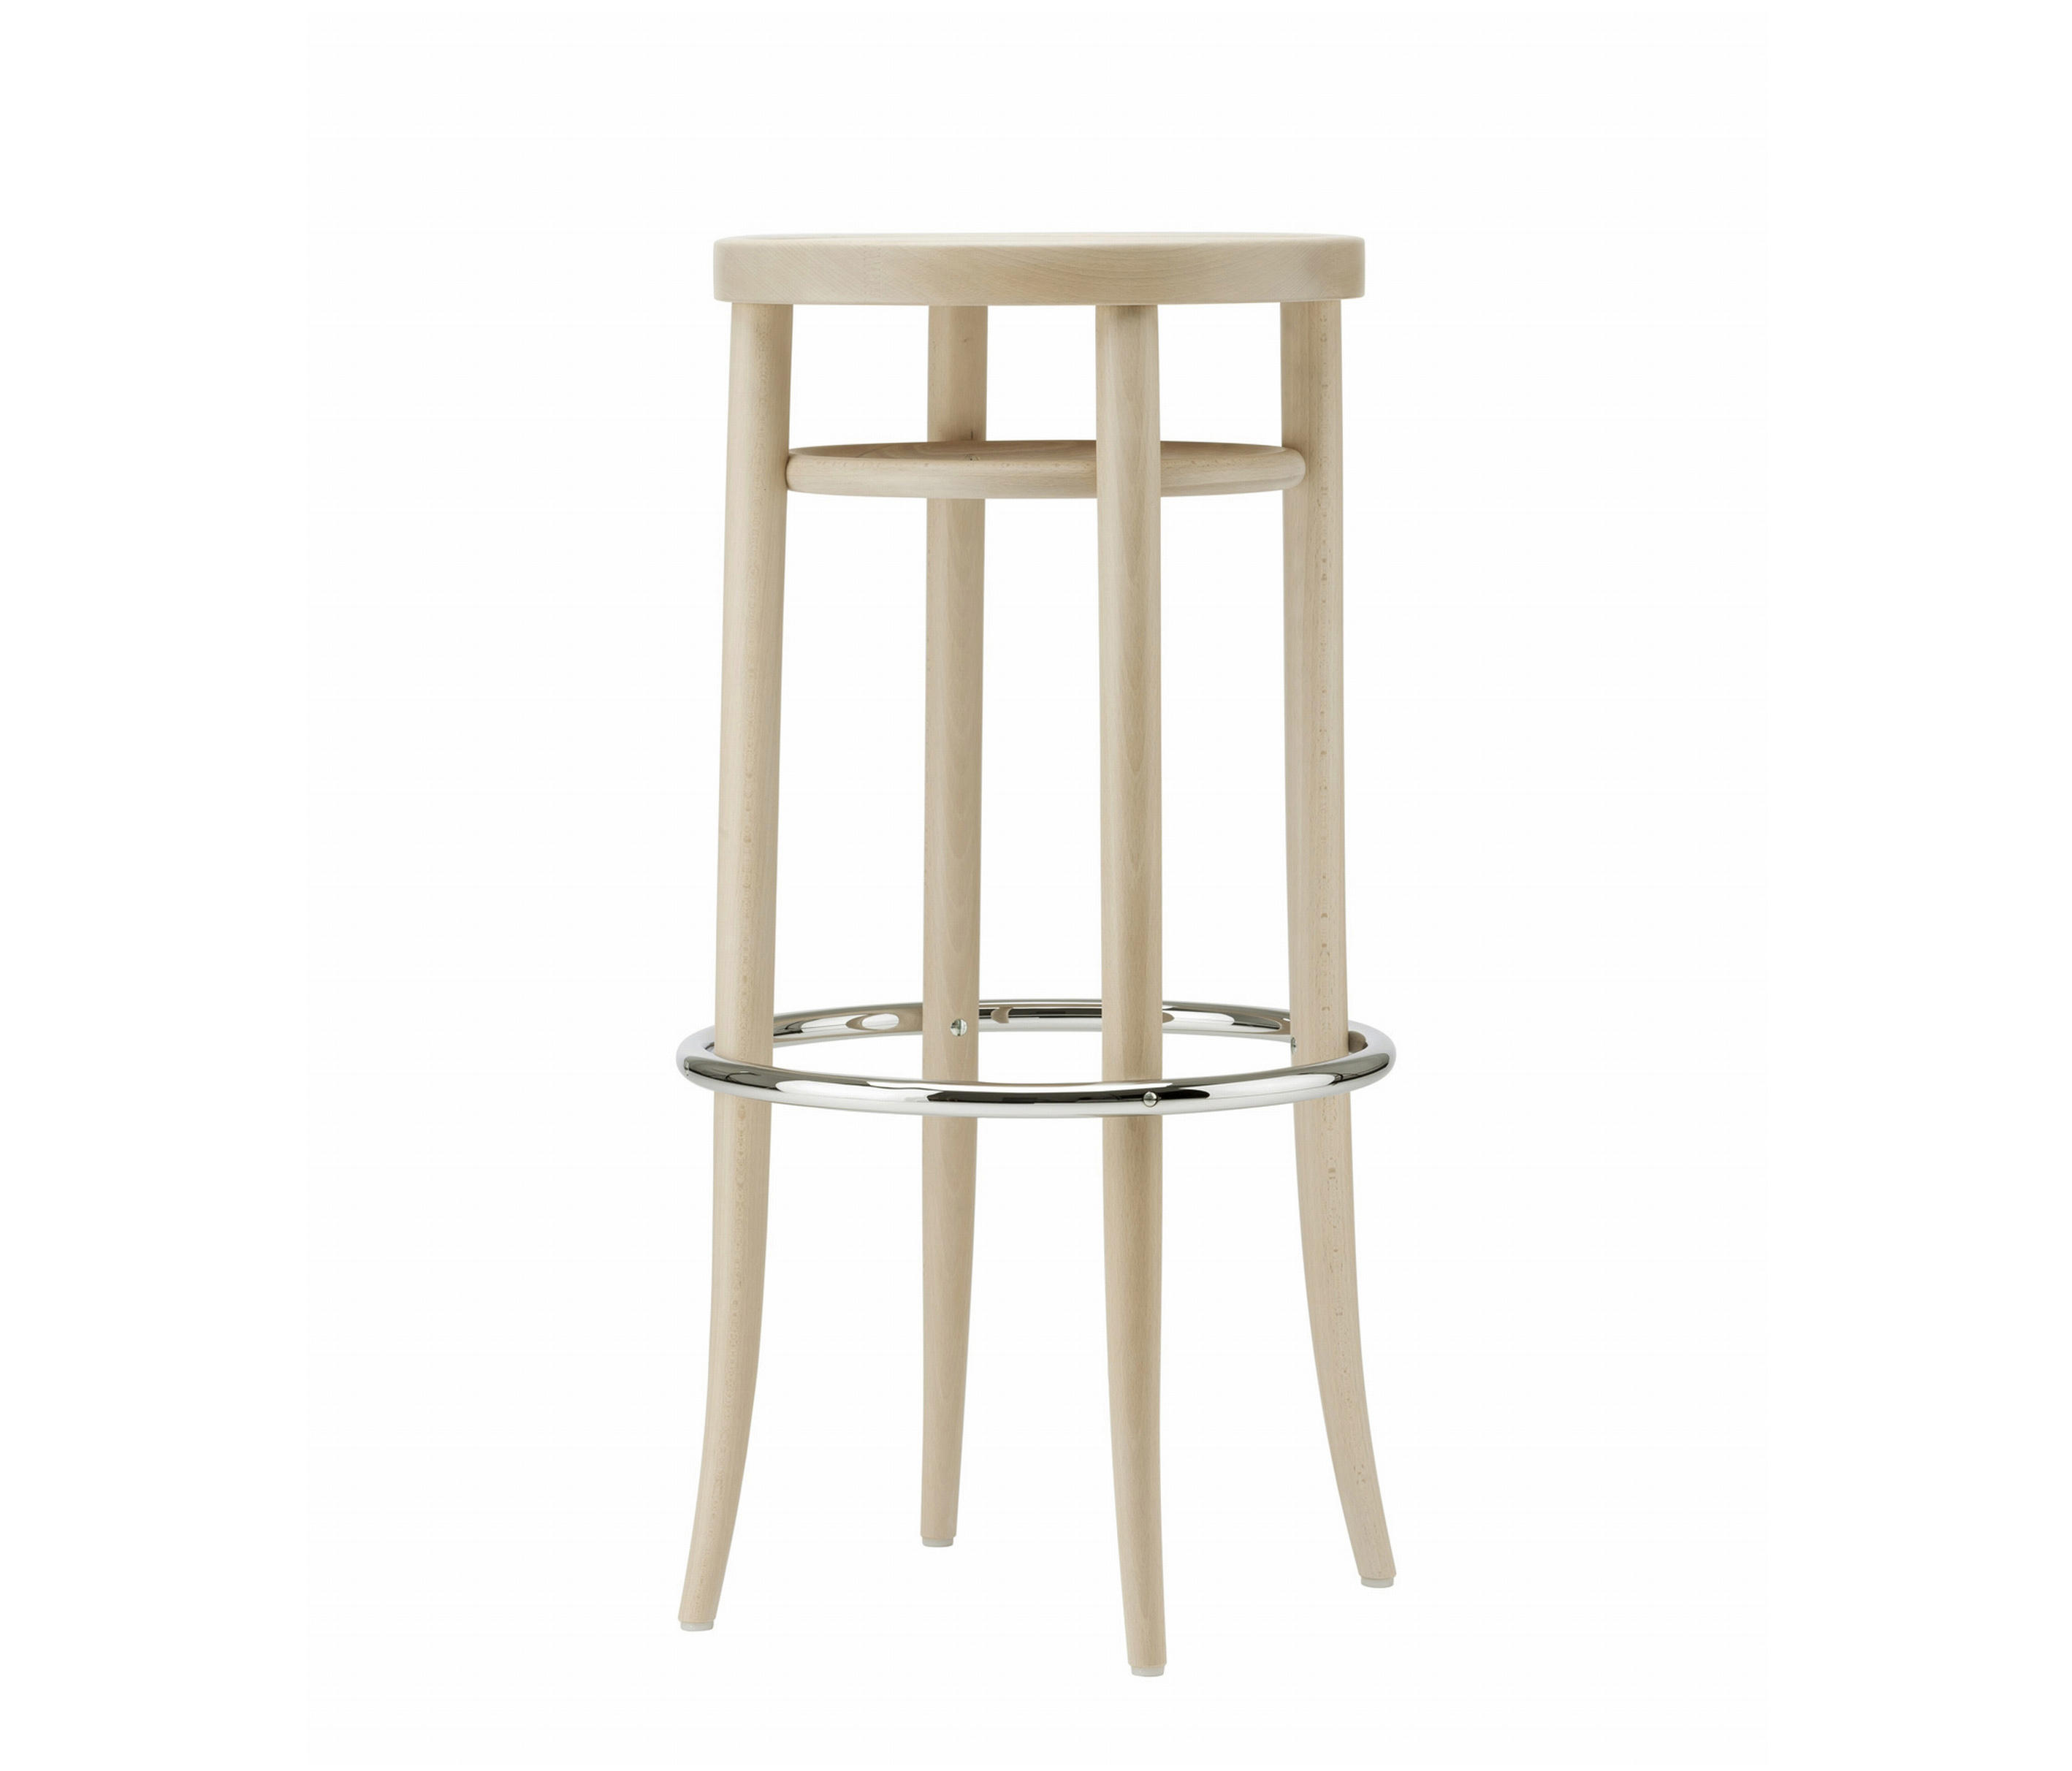 204 mh barhocker von thonet architonic for Thonet barhocker